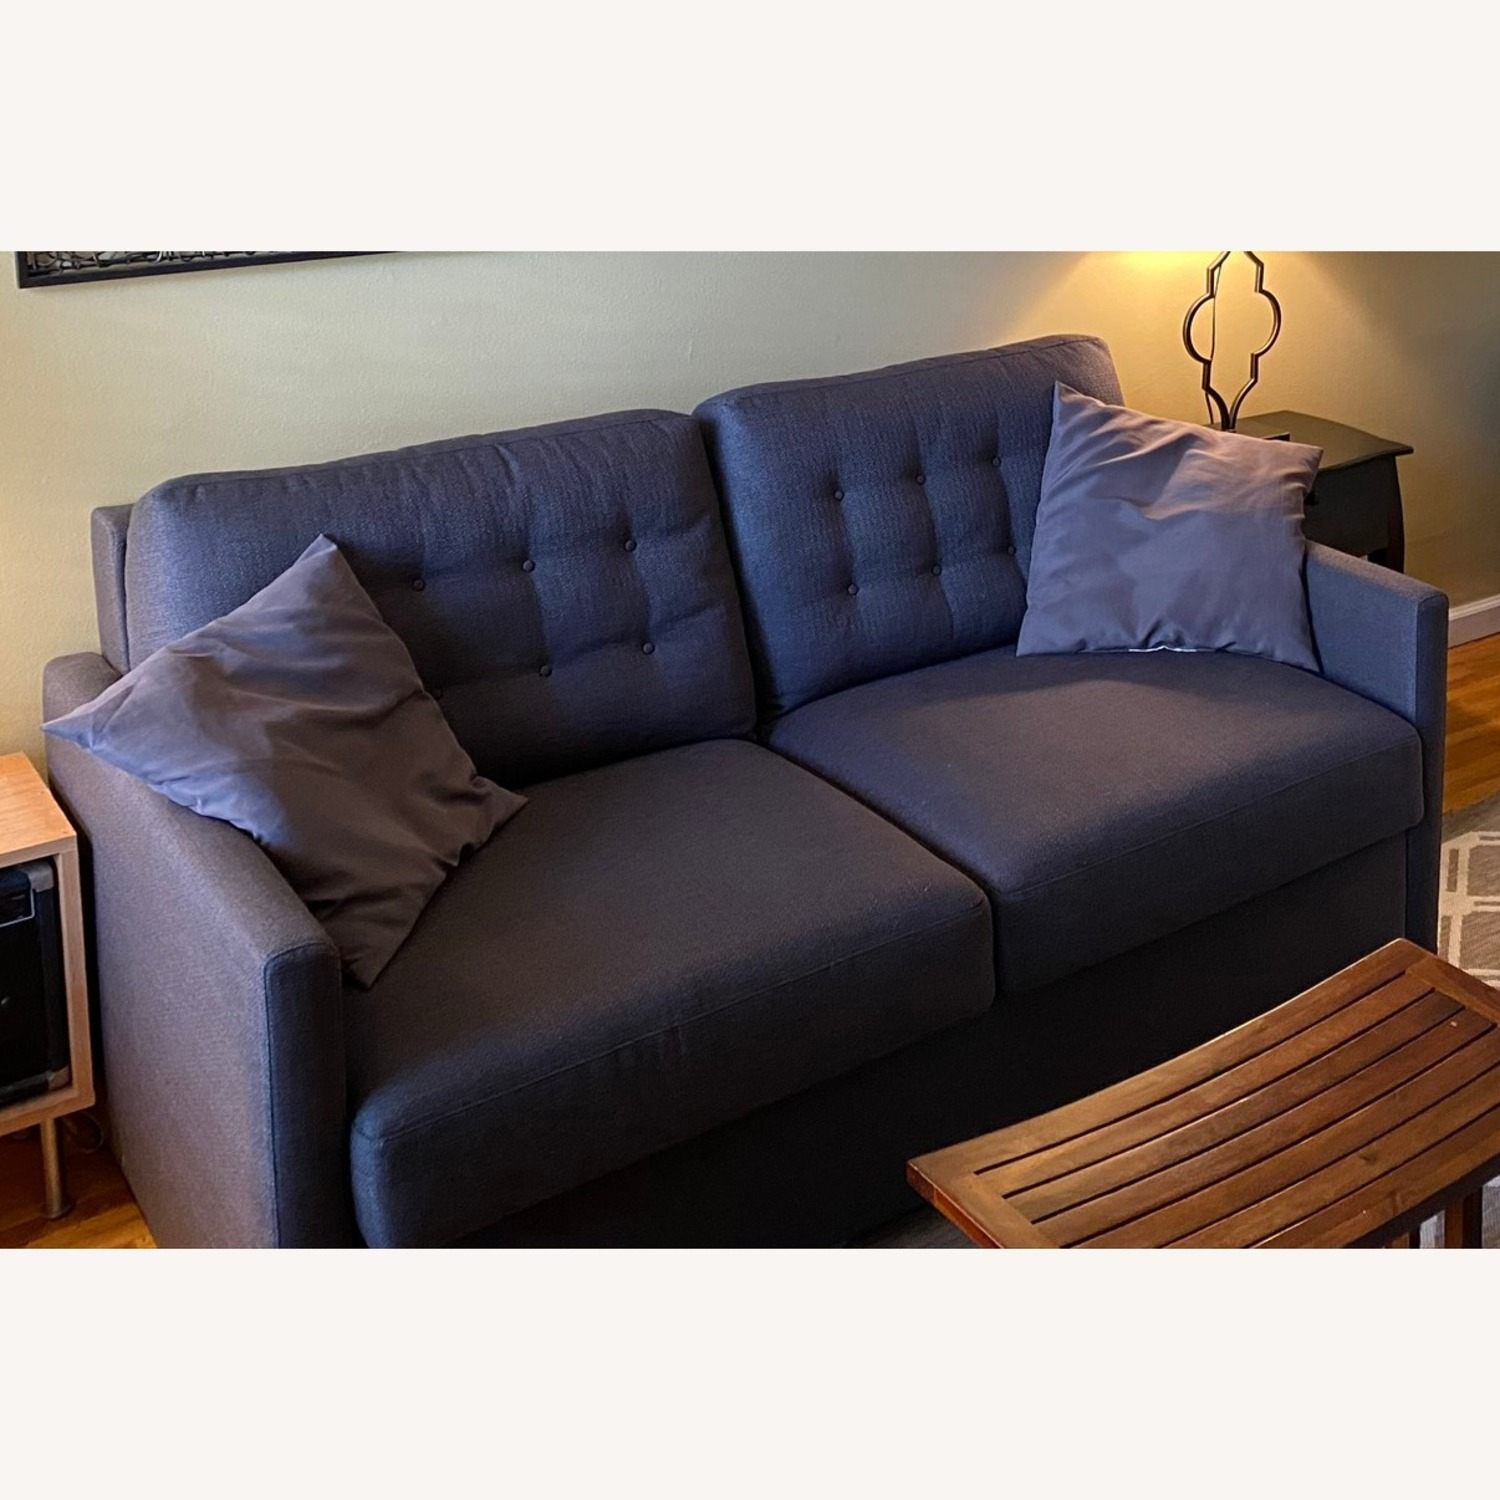 American Leather Queen Size Sleeper-Sofa - image-1